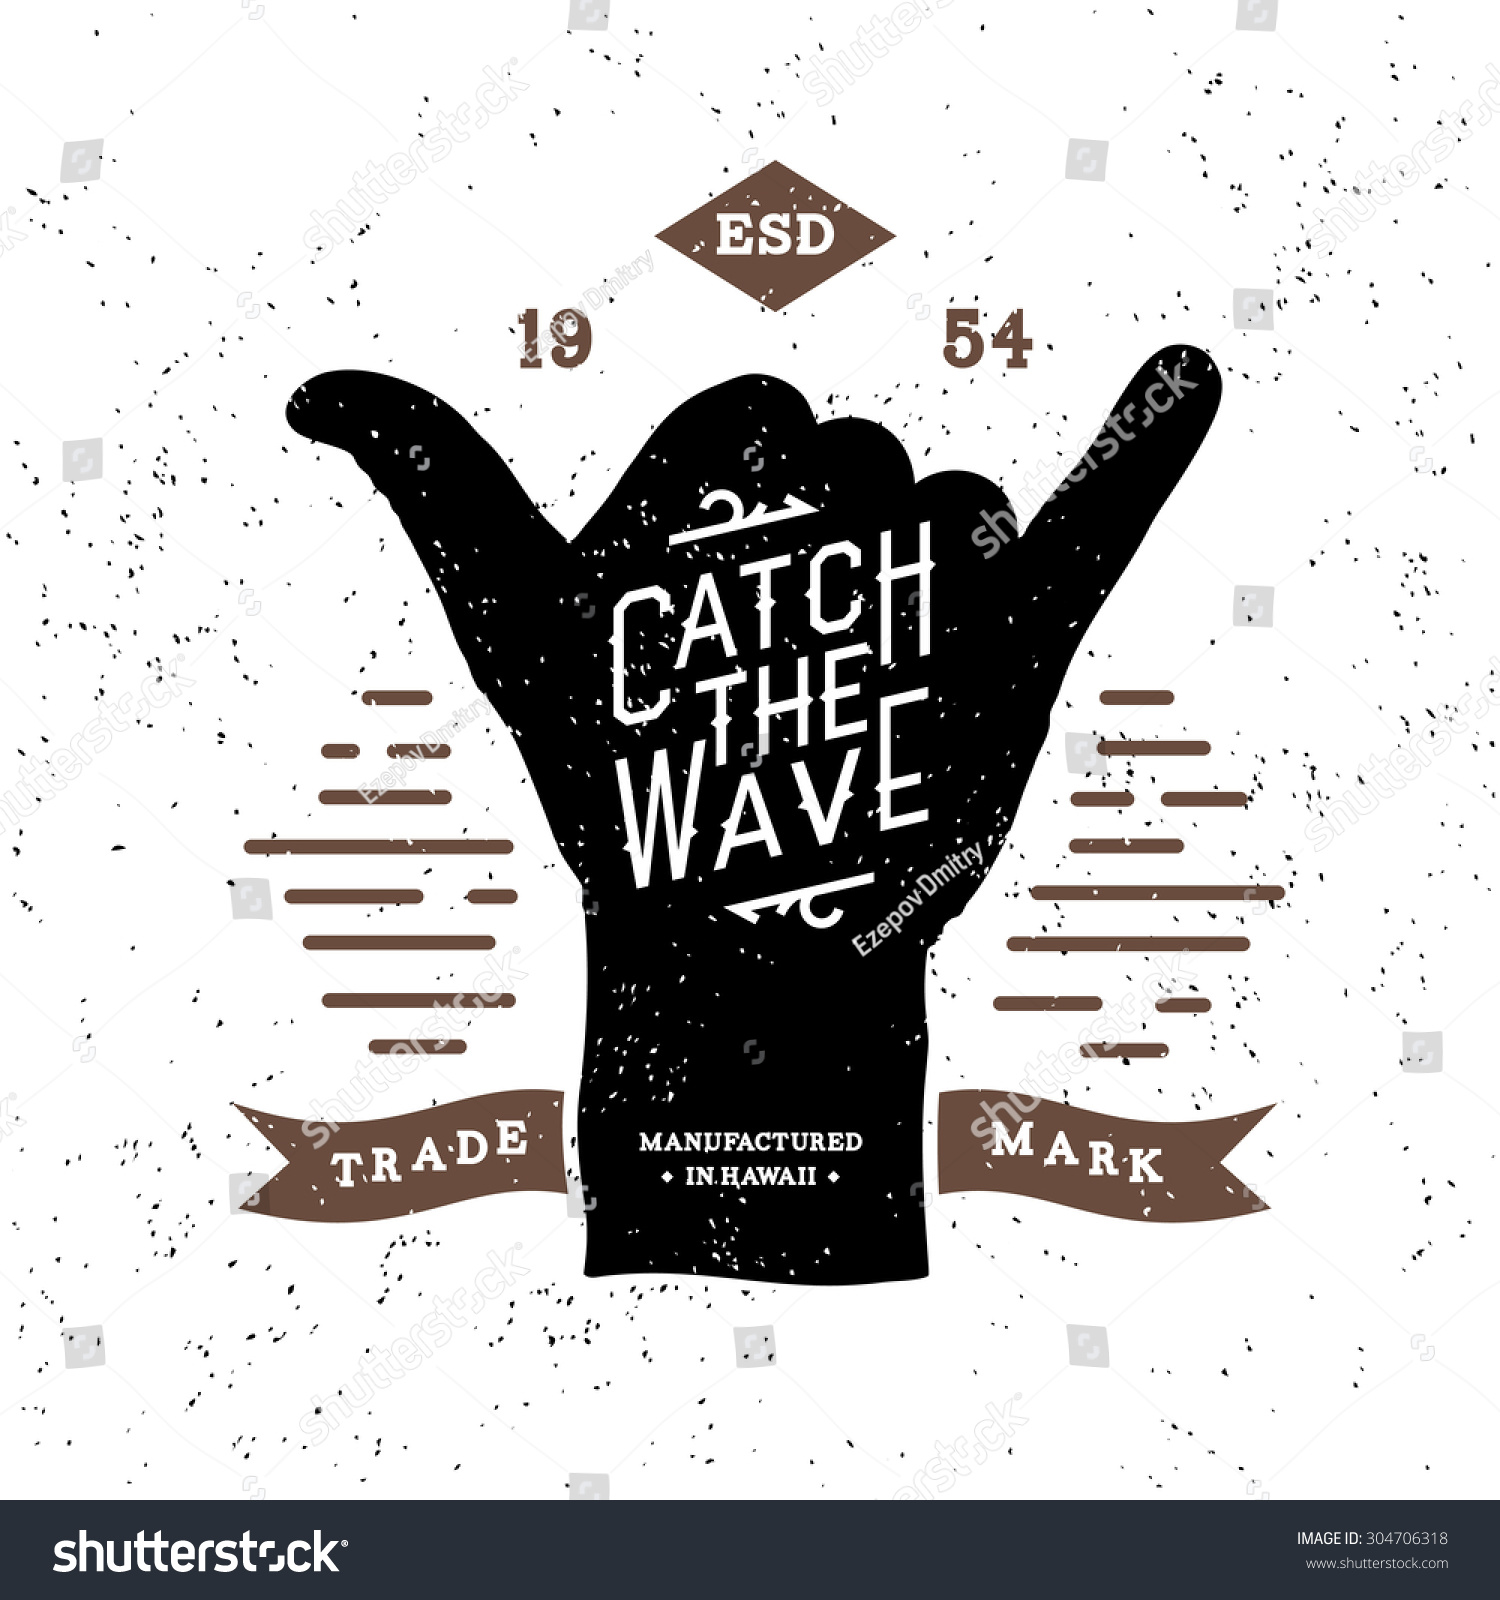 Poker flat's catch the wave